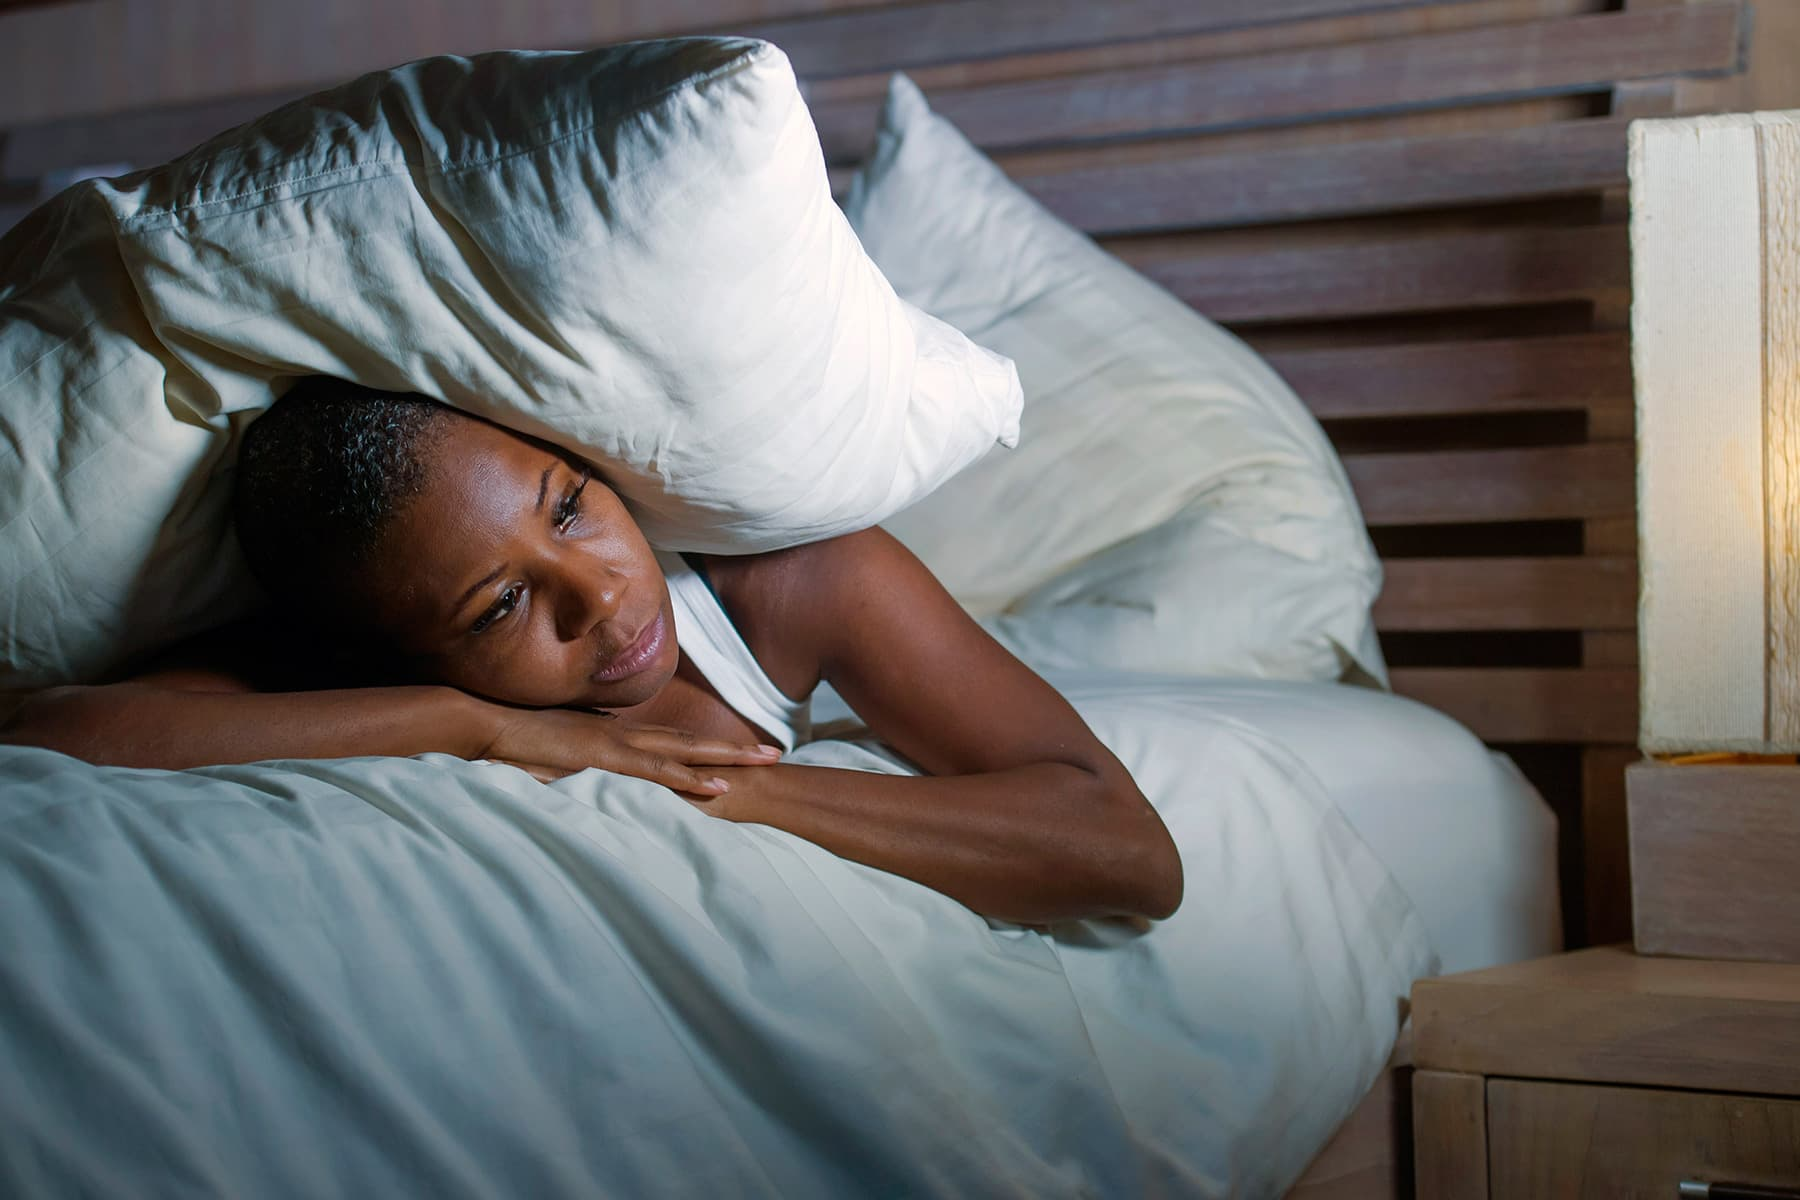 Health Anxiety Common as COVID Restrictions Loosen  - web md